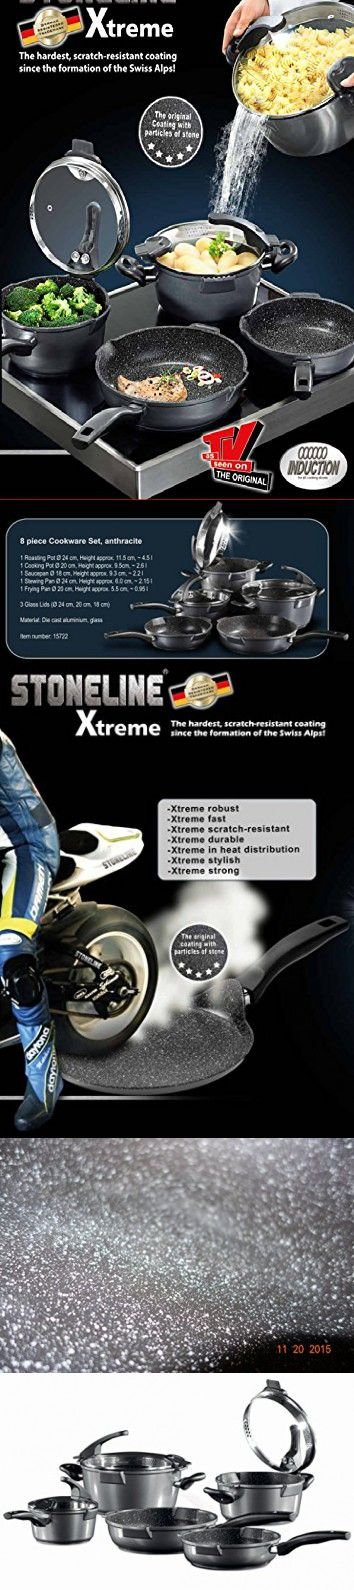 Germany's Stoneline Xtreme Series 8 Pieces Set Non-stick Non-Toxic Stone Coating Cookware - 2016 Top of the line model, better taste food